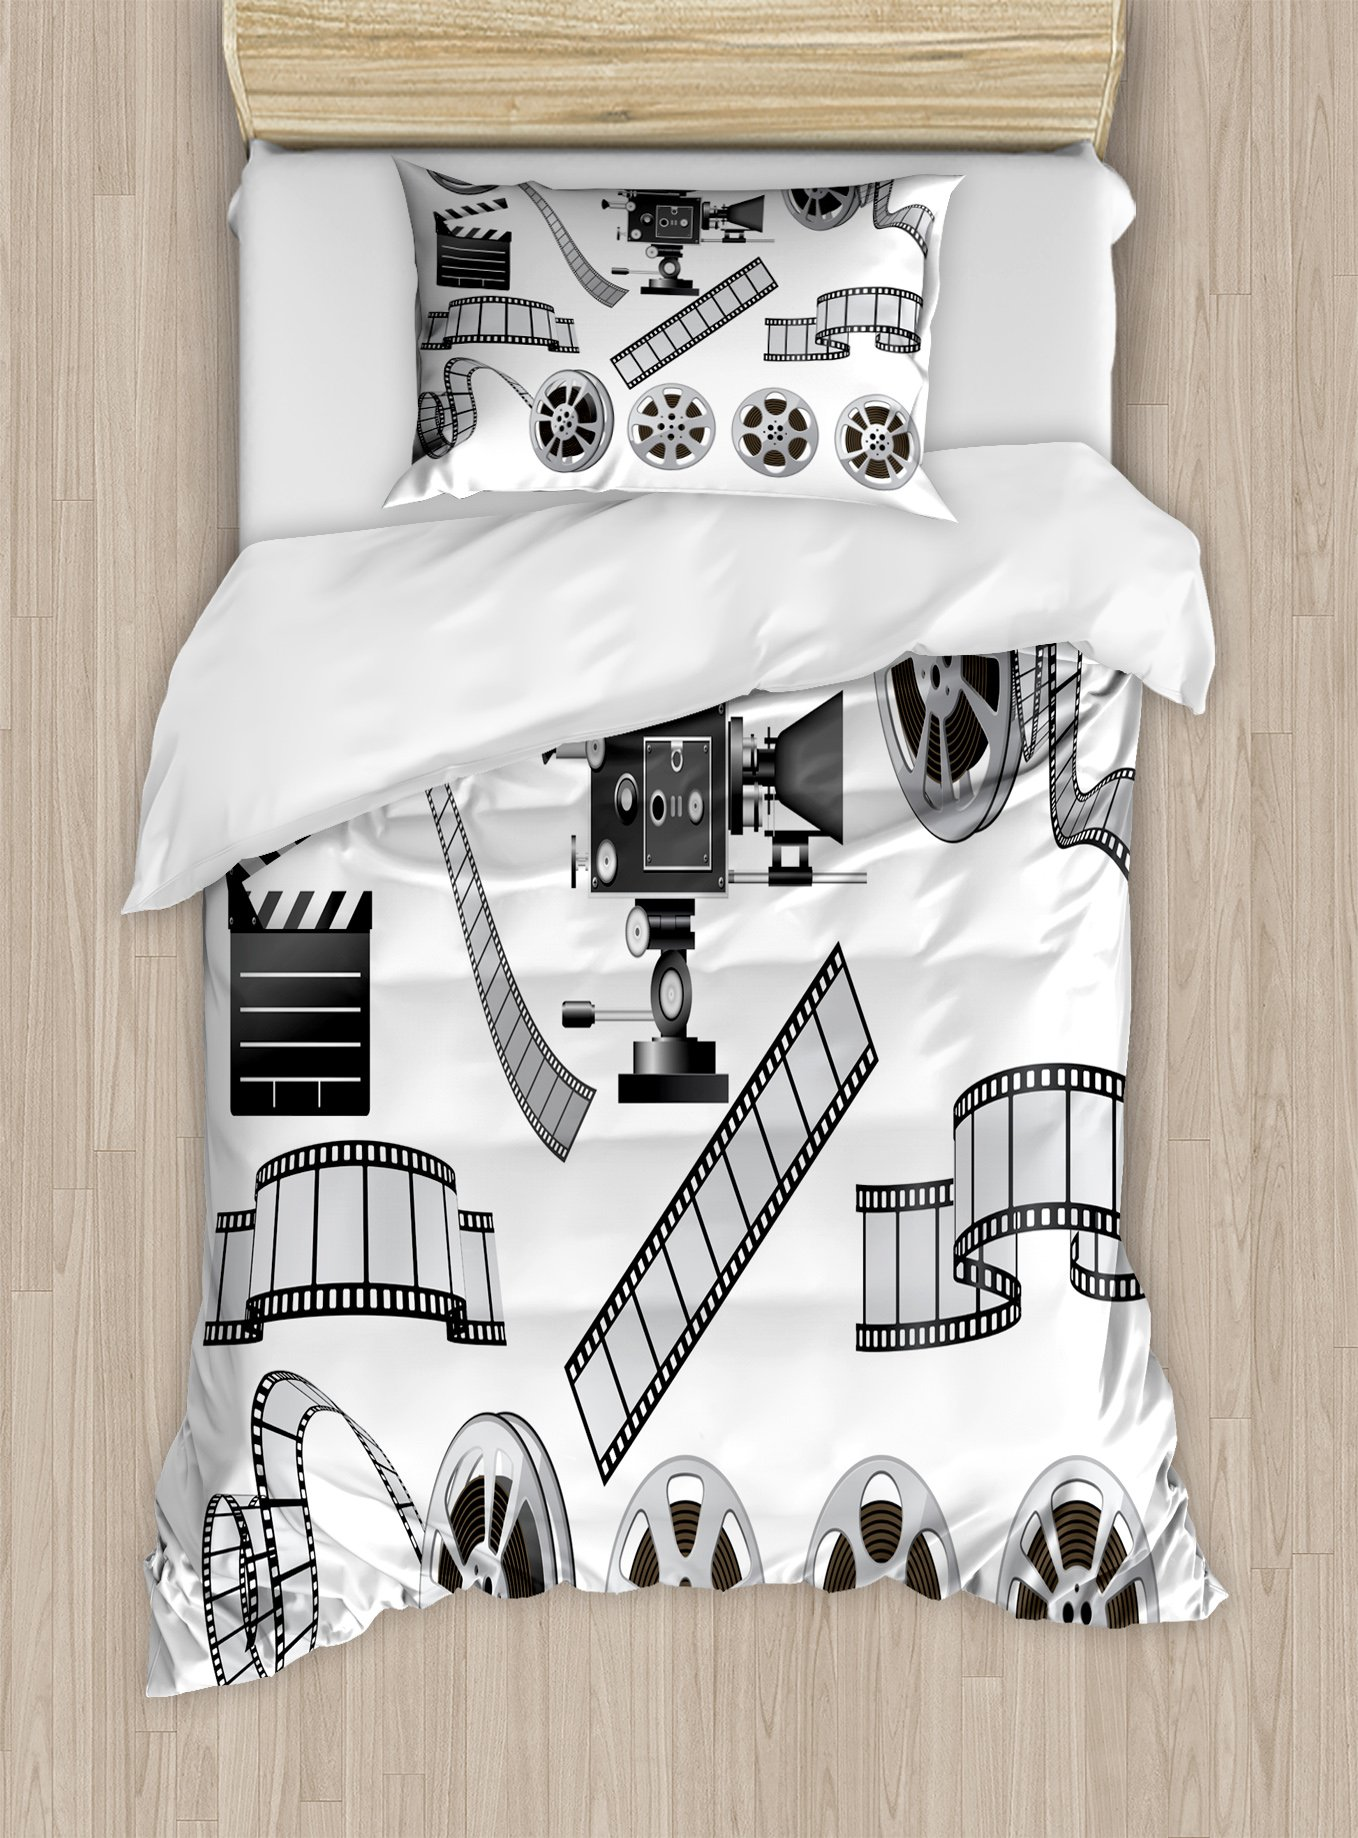 Ambesonne Movie Theater Twin Size Duvet Cover Set, Movie Industry Themed Greyscale Illustration of Projector Film Slate and Reel, Decorative 2 Piece Bedding Set with 1 Pillow Sham, Grey Black